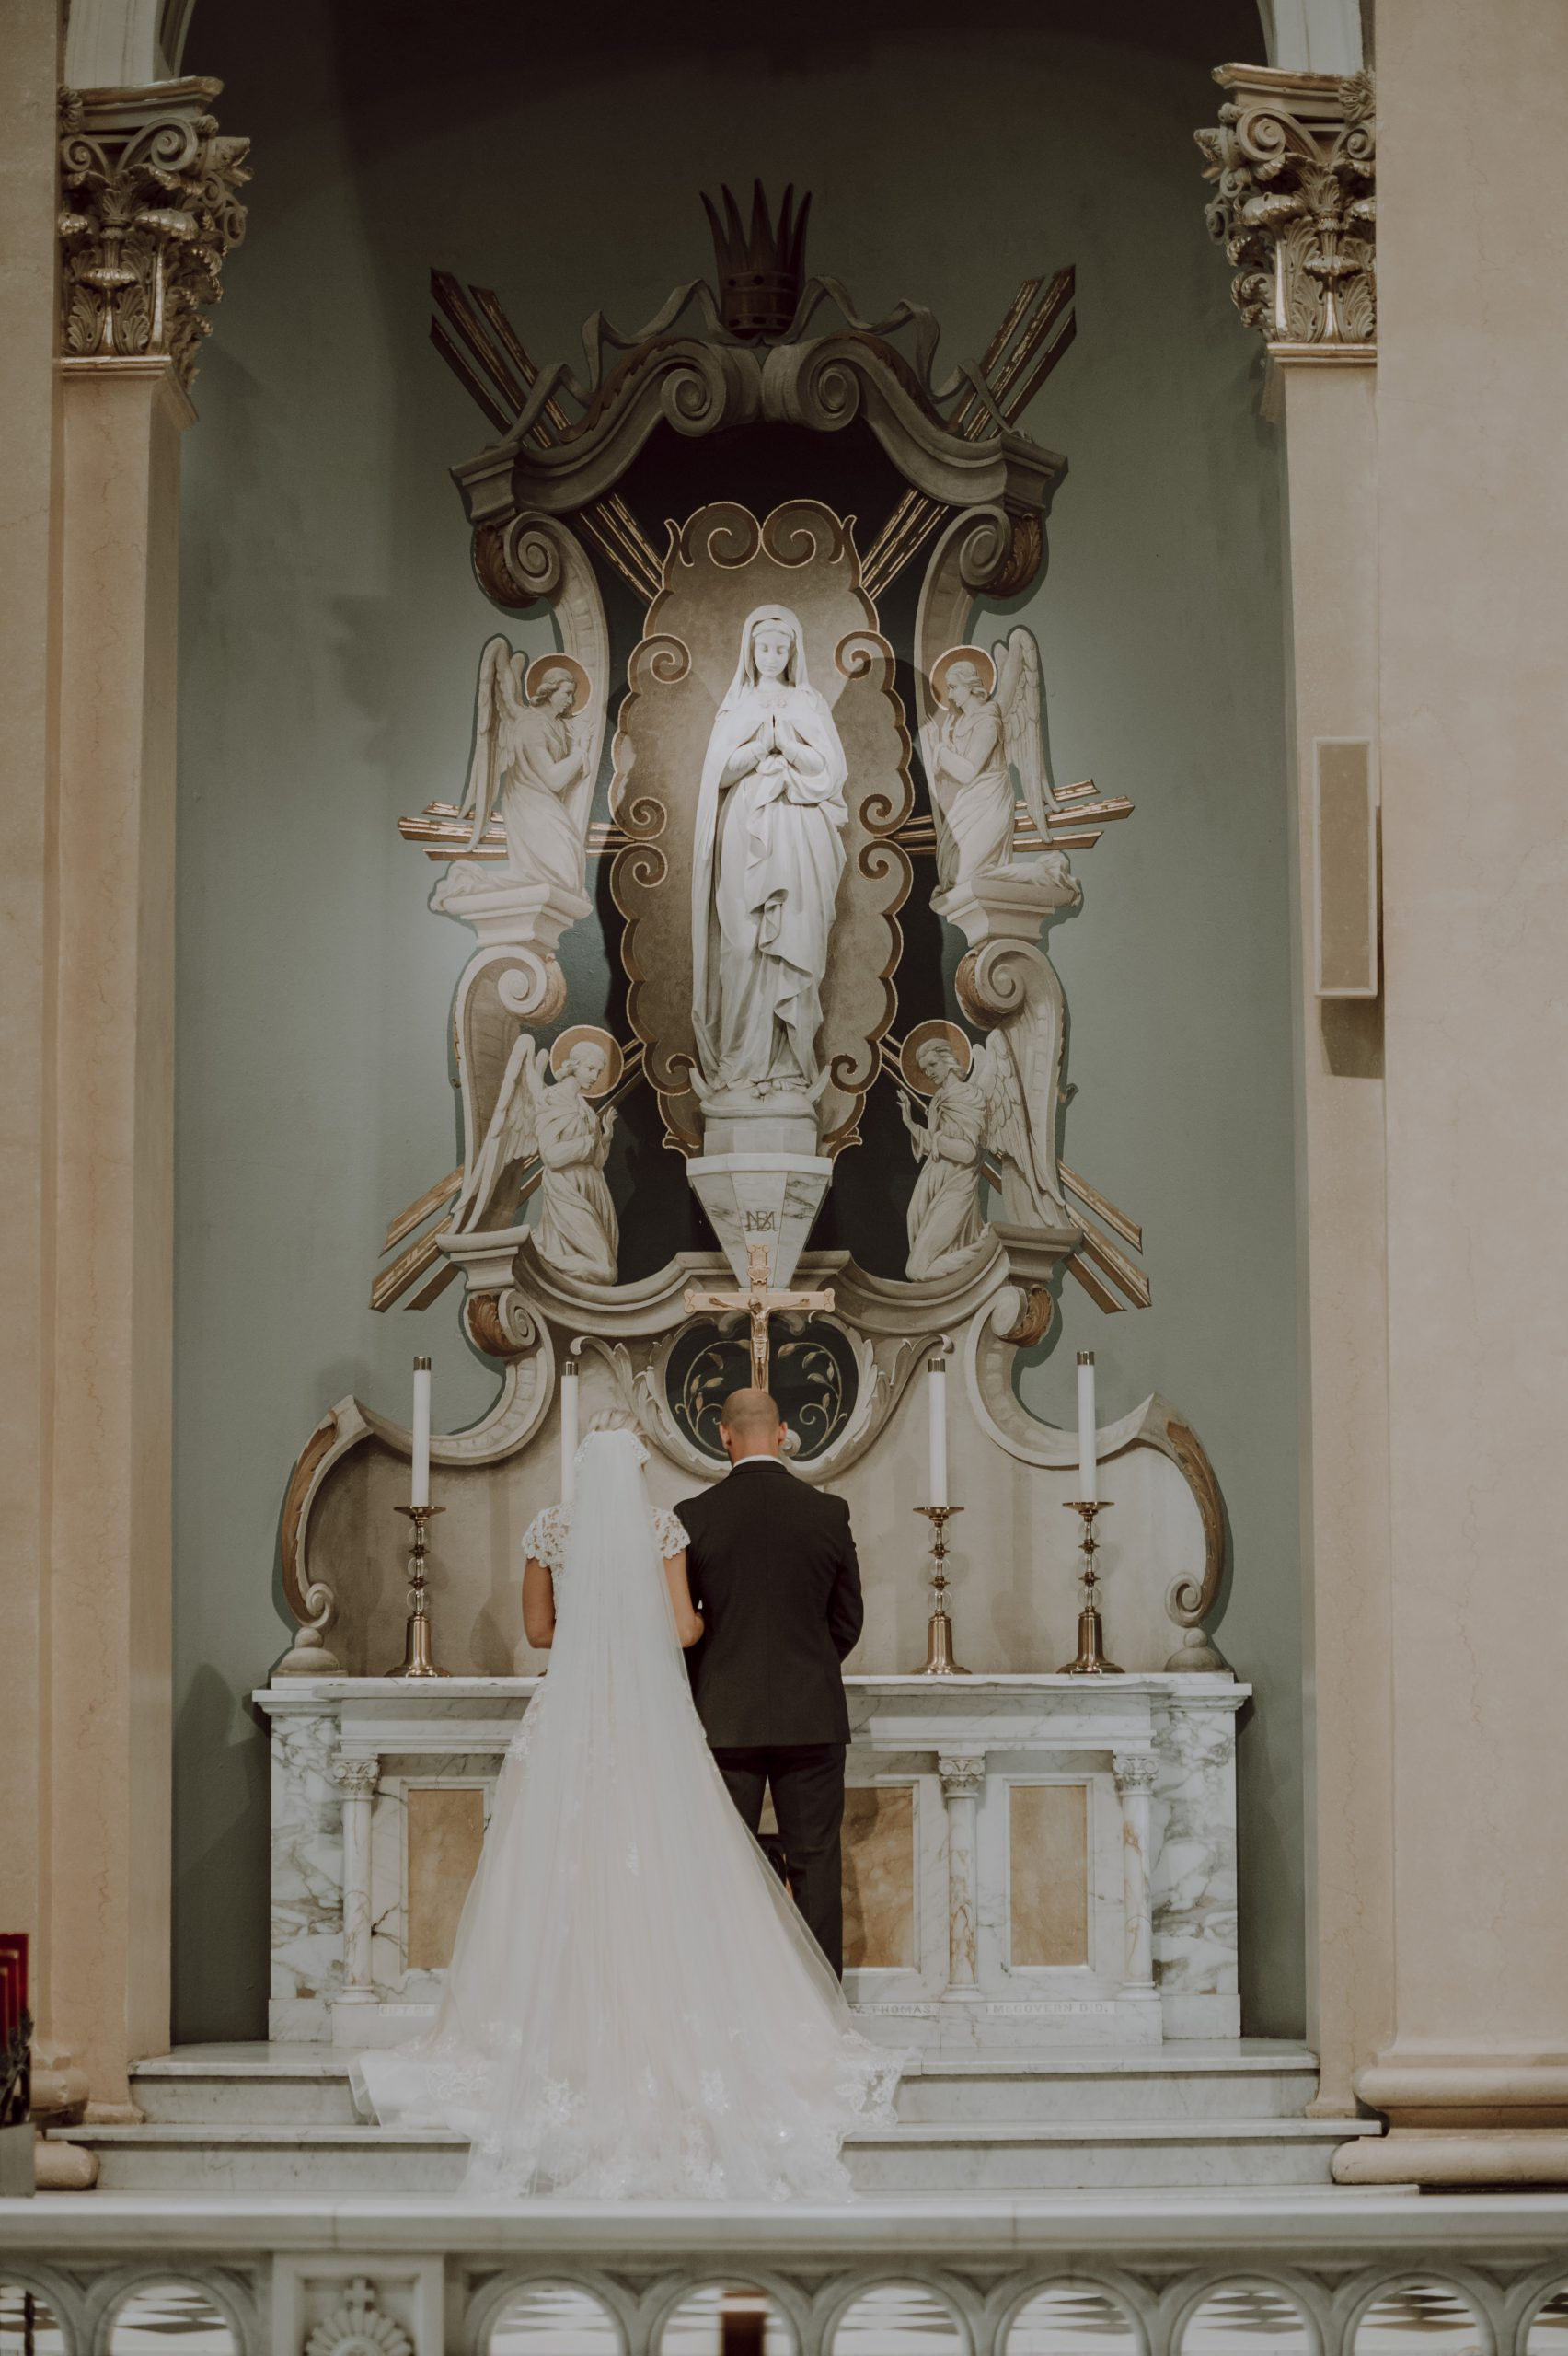 A prayer for the marriage and its prosperity. Captured by Lovefusion Photography at Stock's Manor in Mechanicsburg, PA. Featured on Dream Weddings.